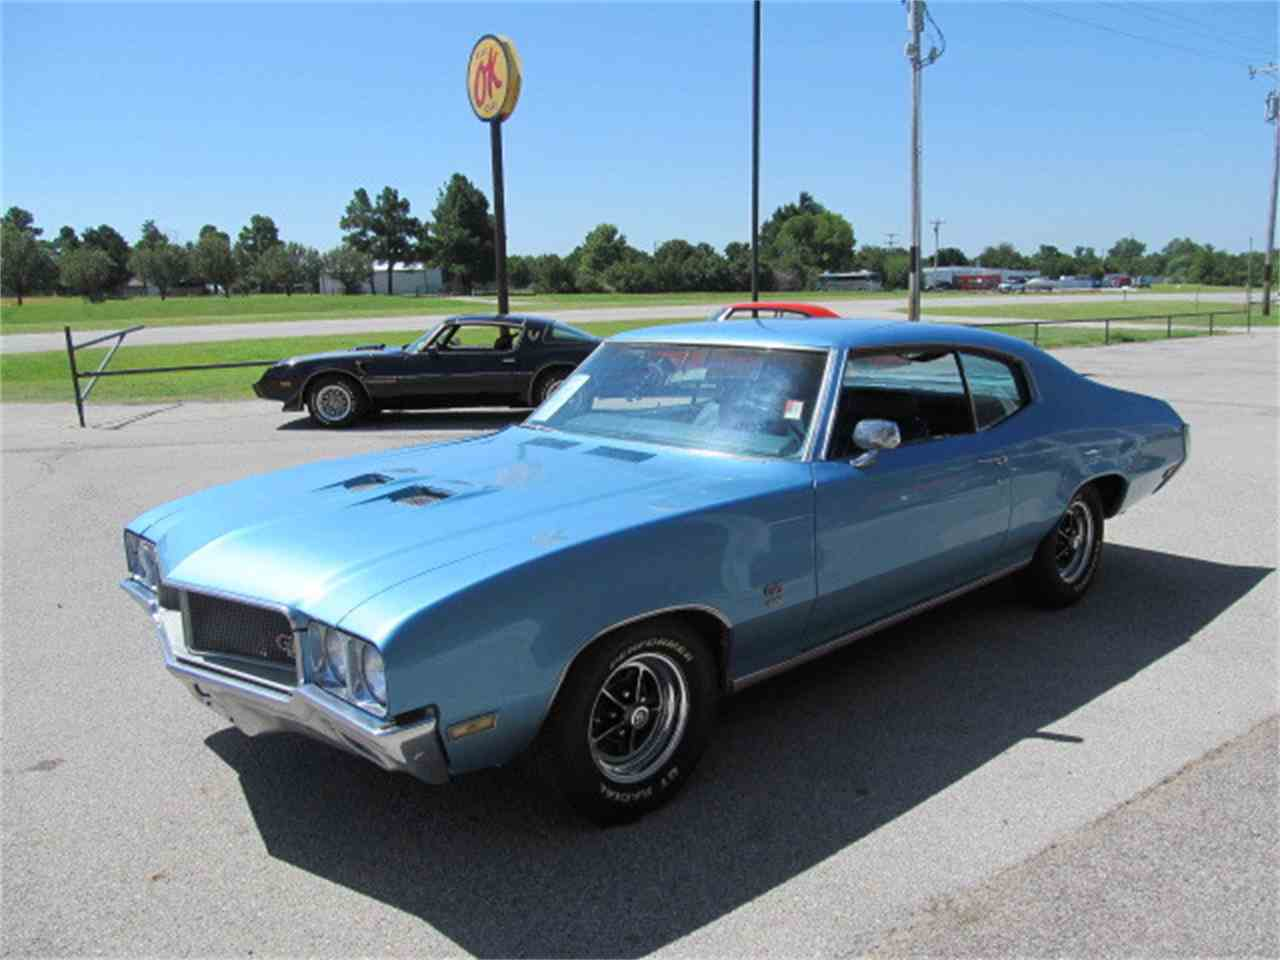 Cars For Sale Under 5000 By Owner >> 1970 Buick Skylark for Sale | ClassicCars.com | CC-892006